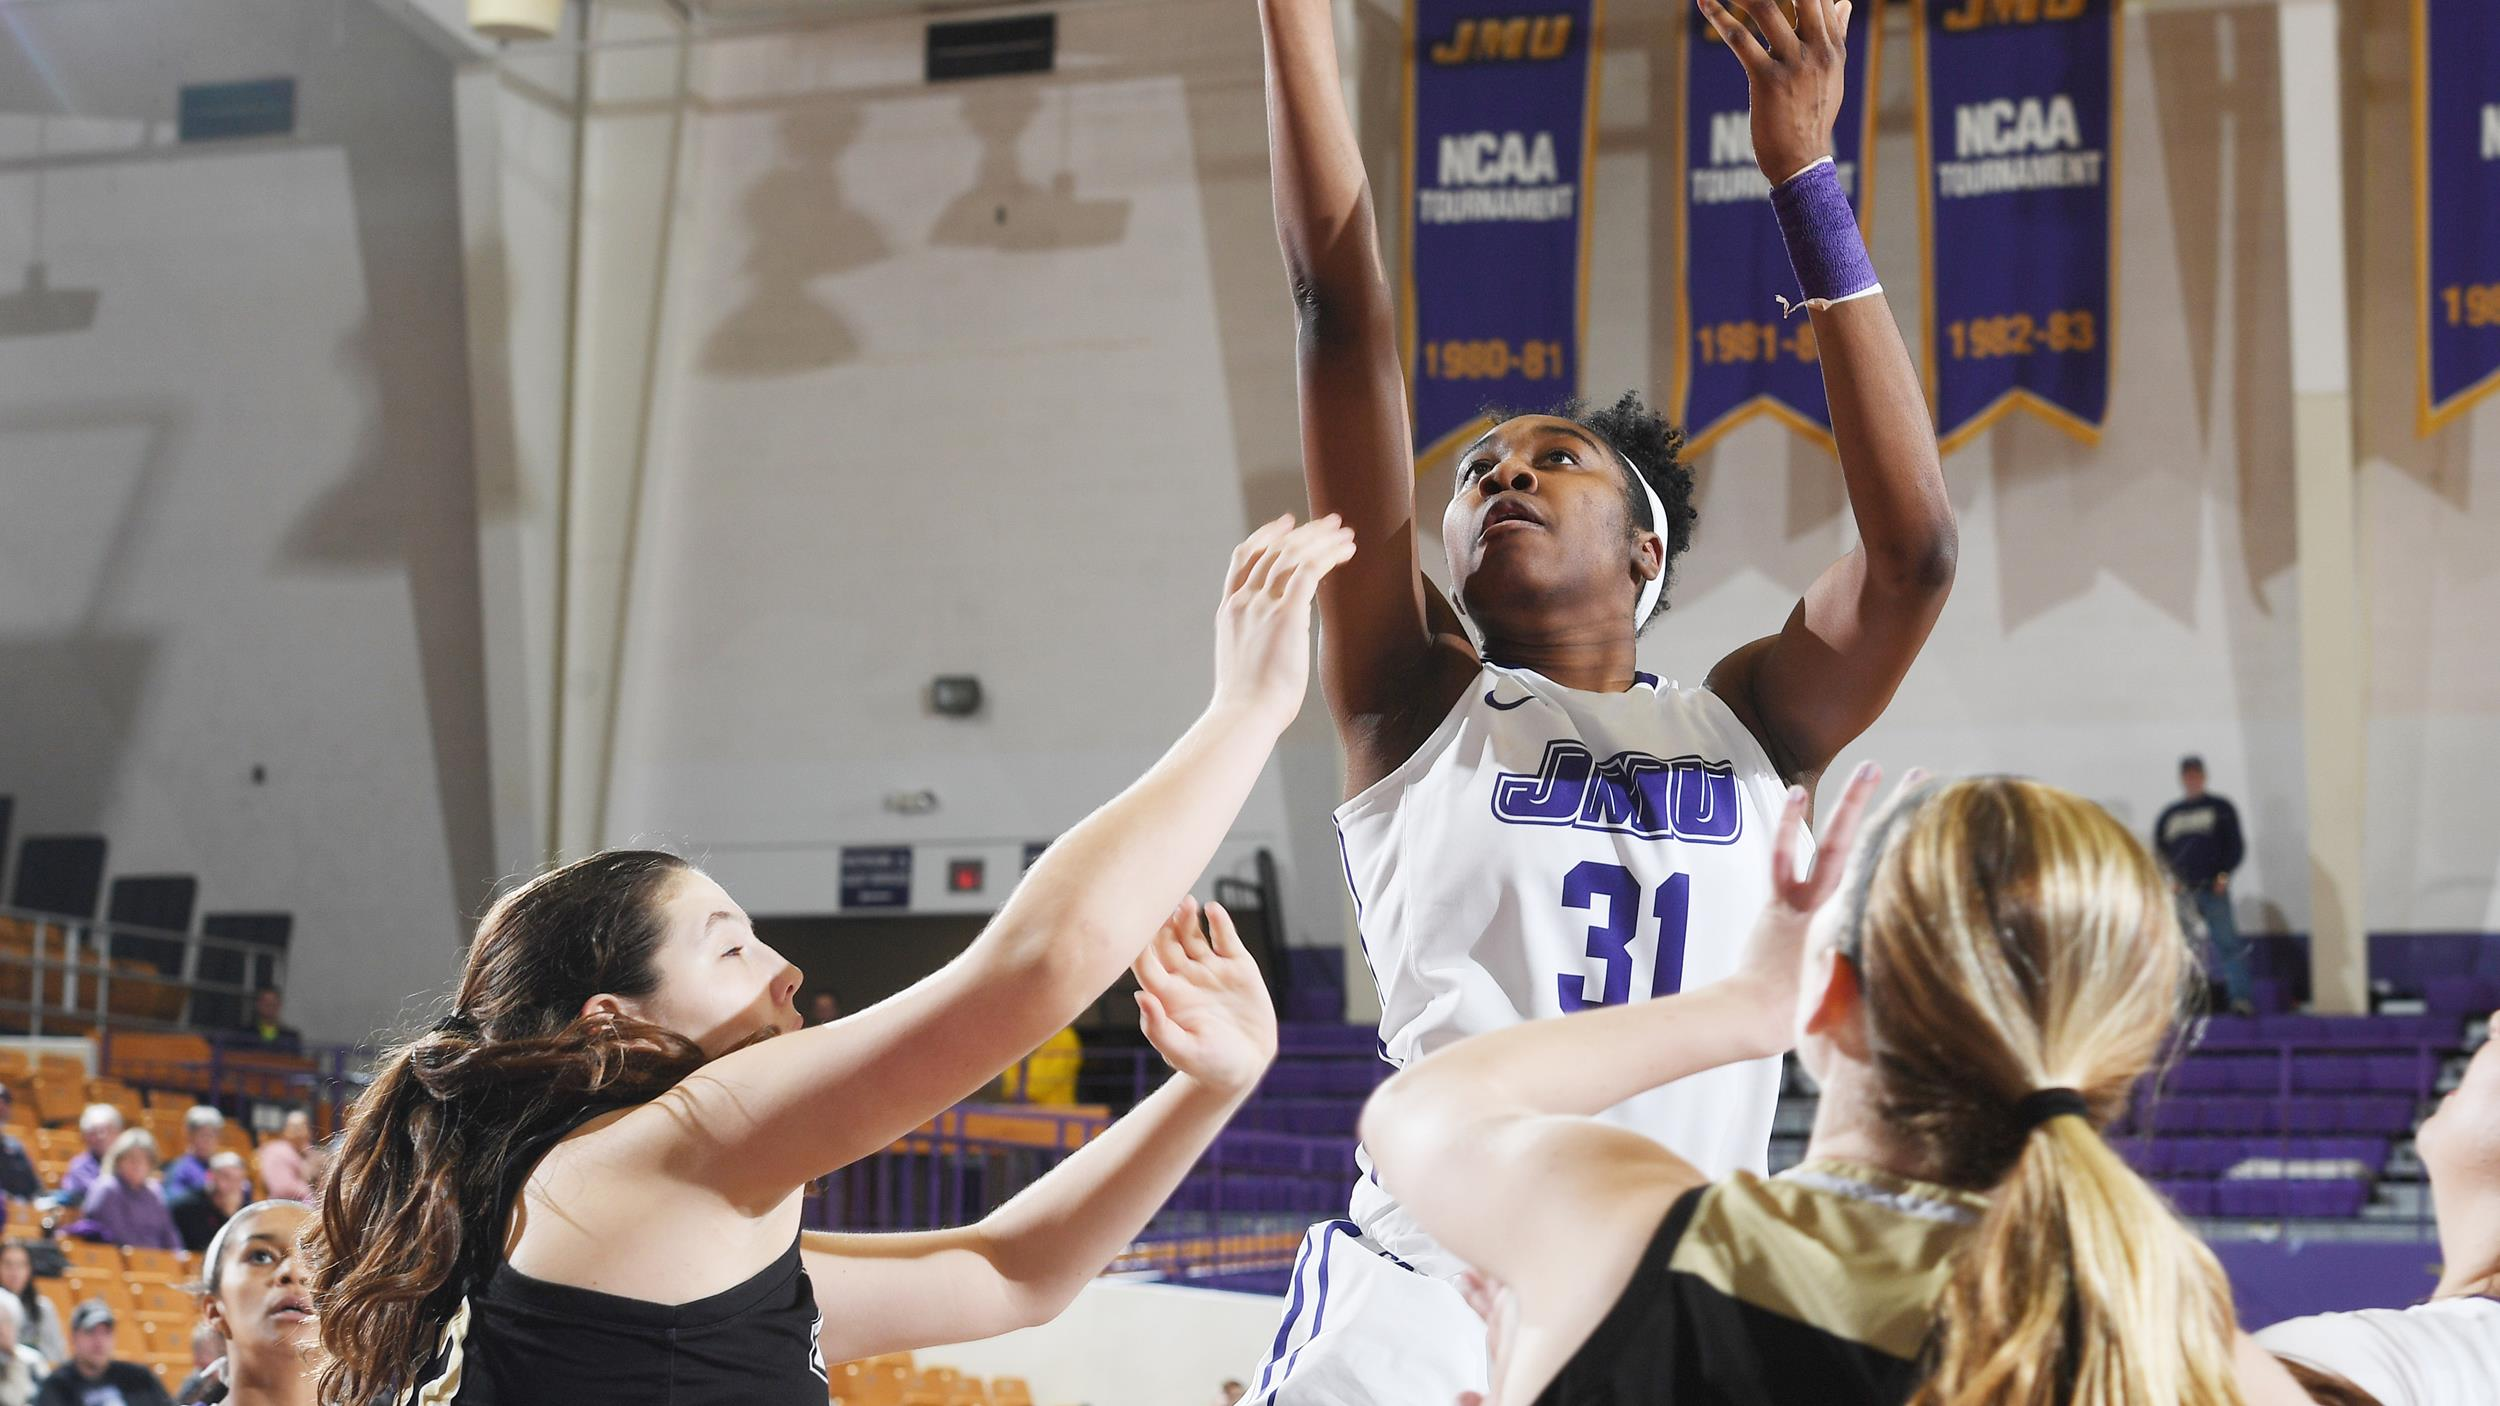 Women's Basketball: Balanced Team Effort Powers JMU to Seventh Straight Win)